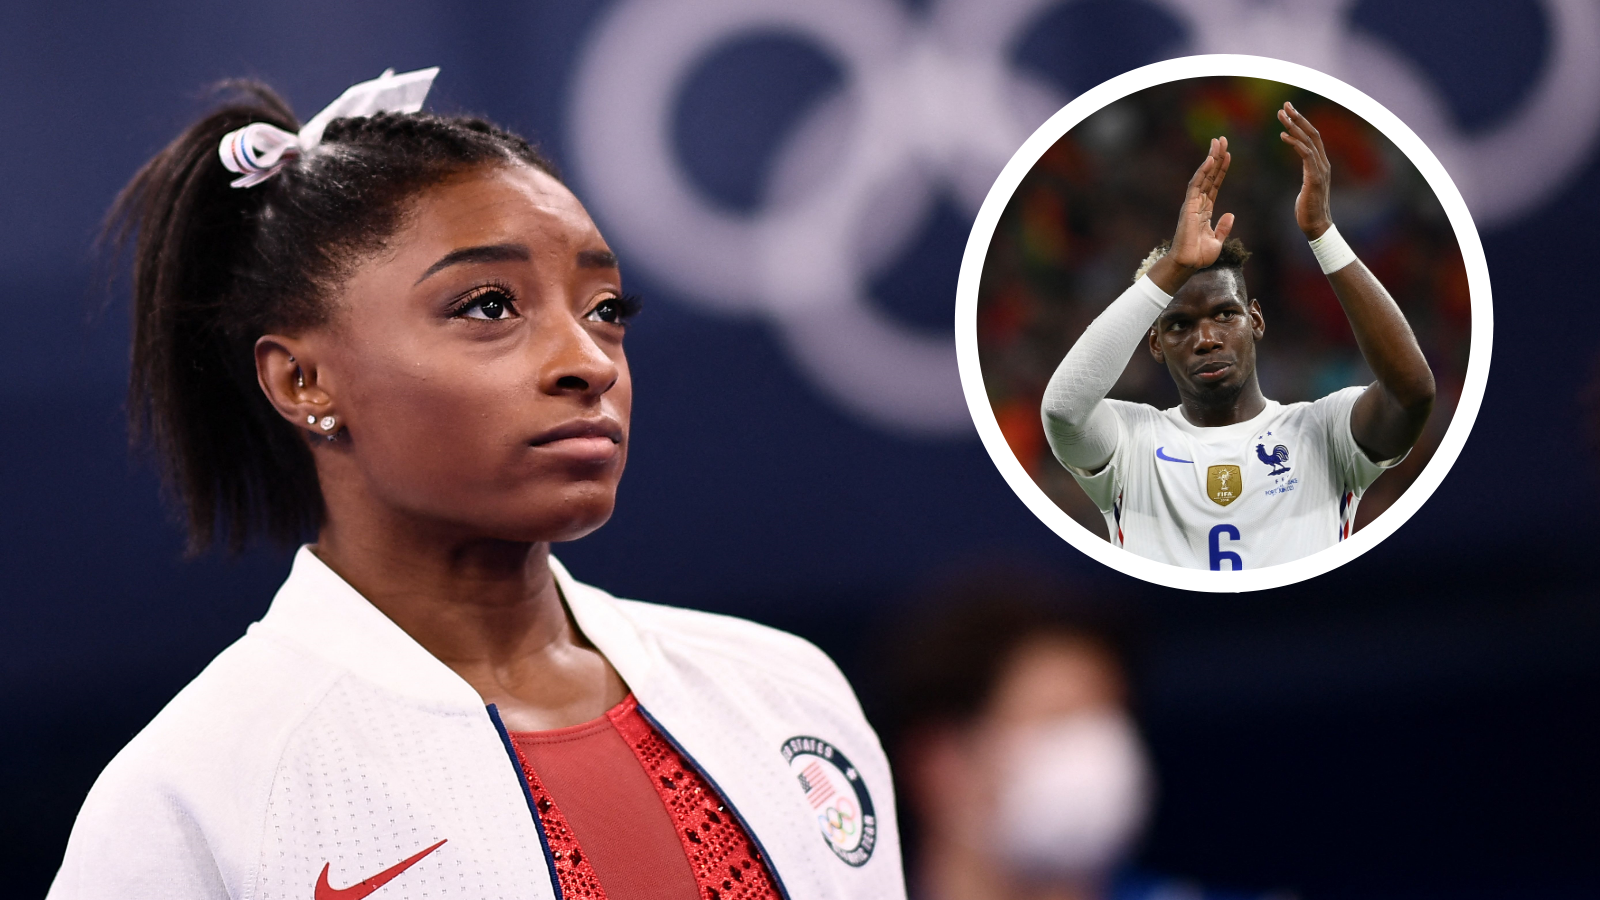 'A moment of undeniable strength' – Pogba backs Biles over mental health admission at Olympics